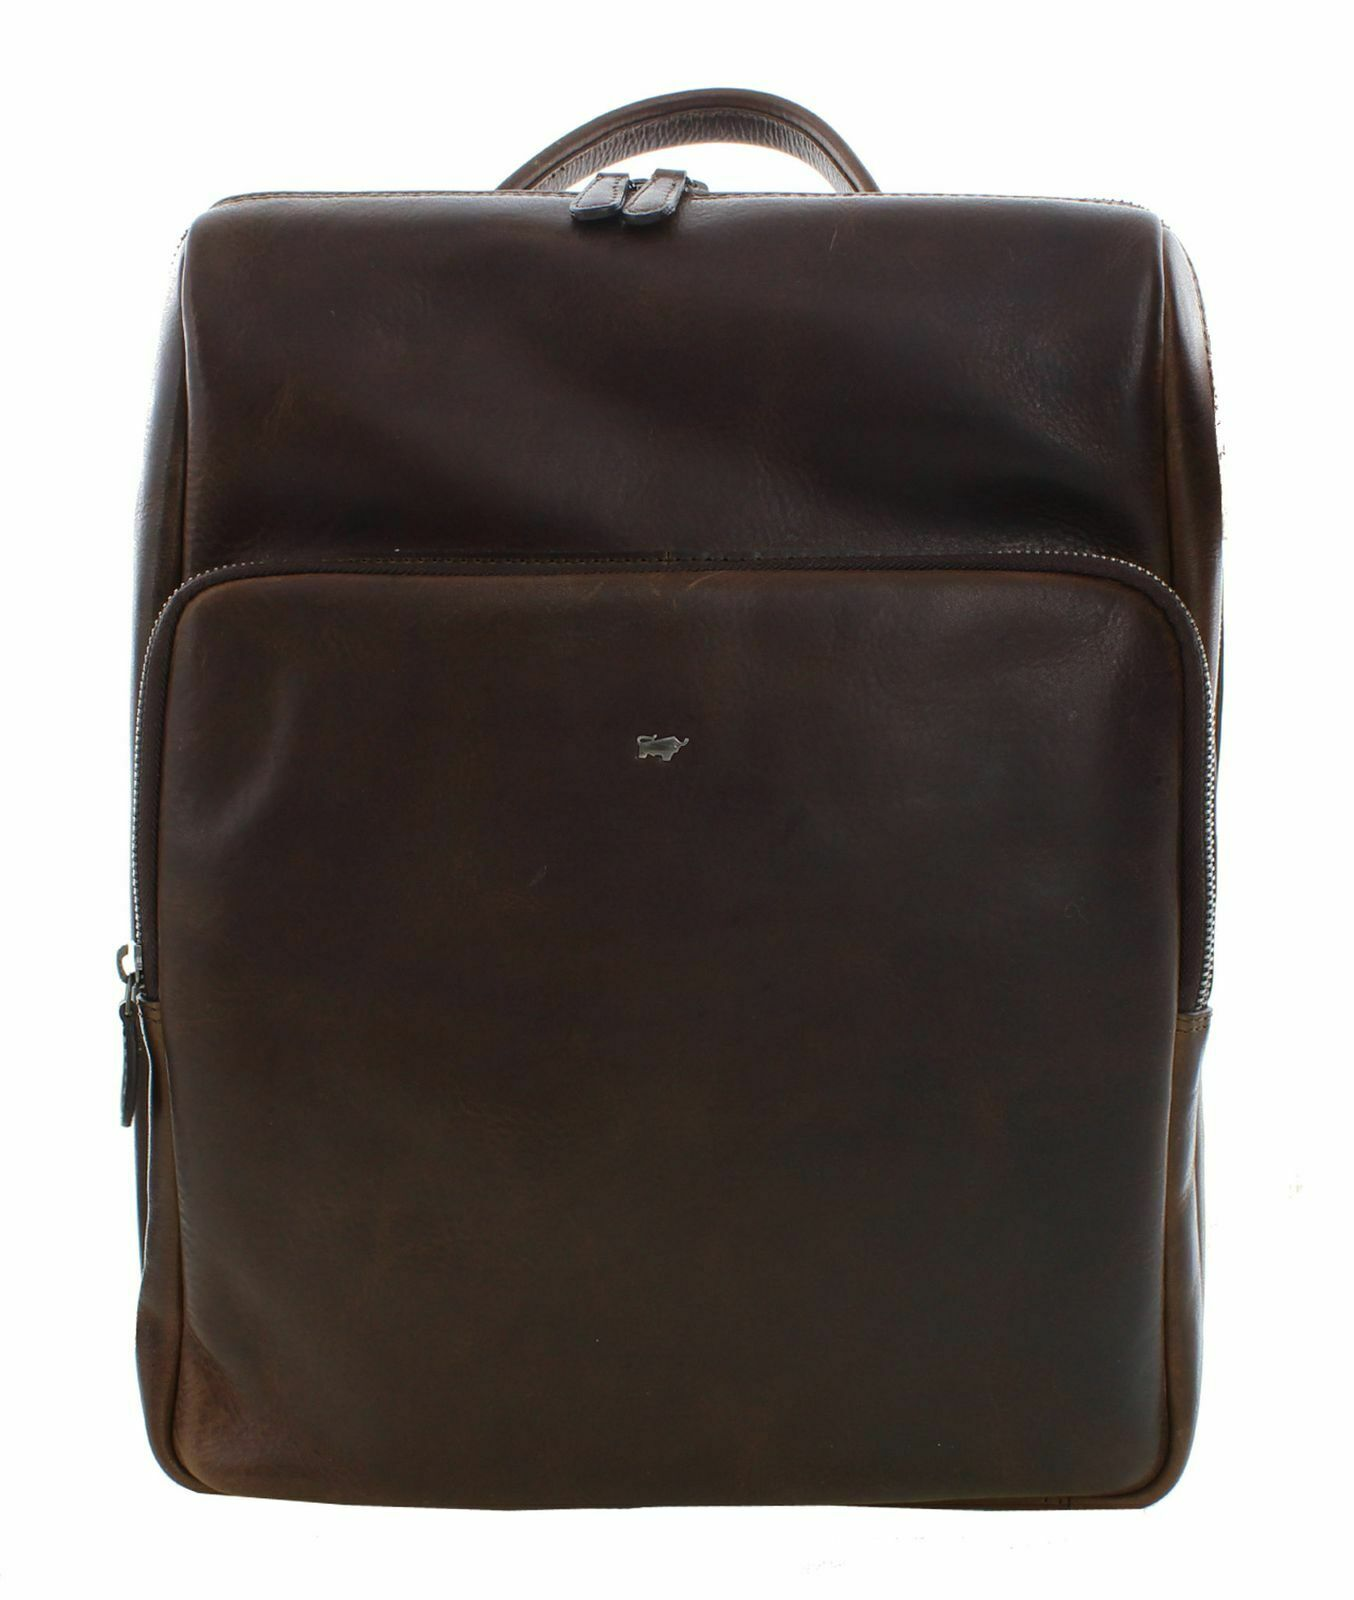 Marronee Büffel Parma Backpack Marronee